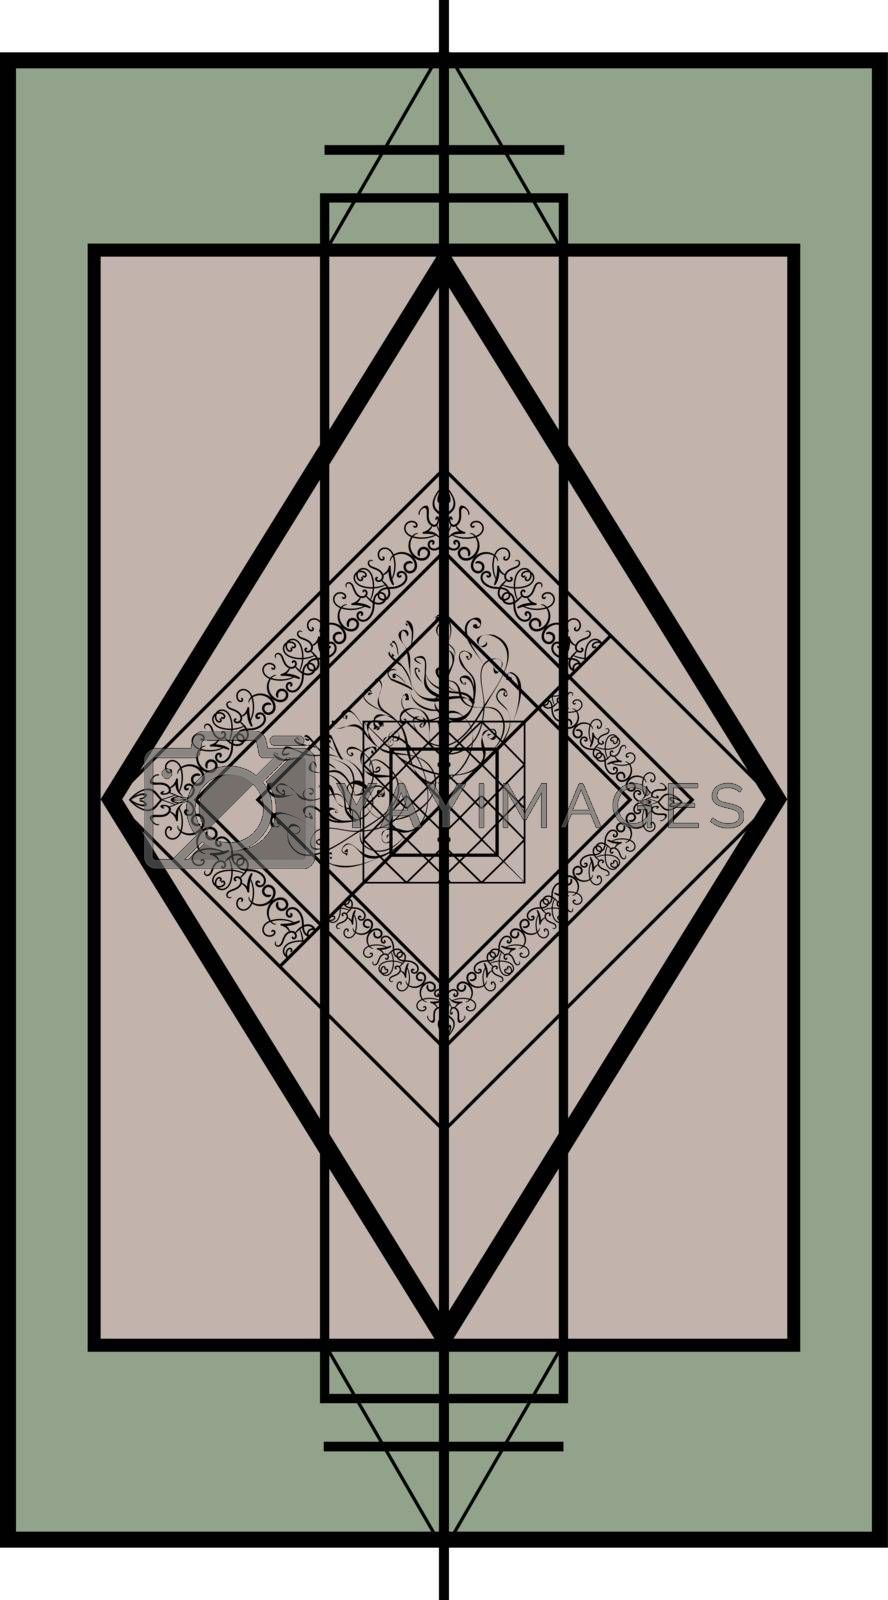 Geometric spring tracery in asian style by paranoido